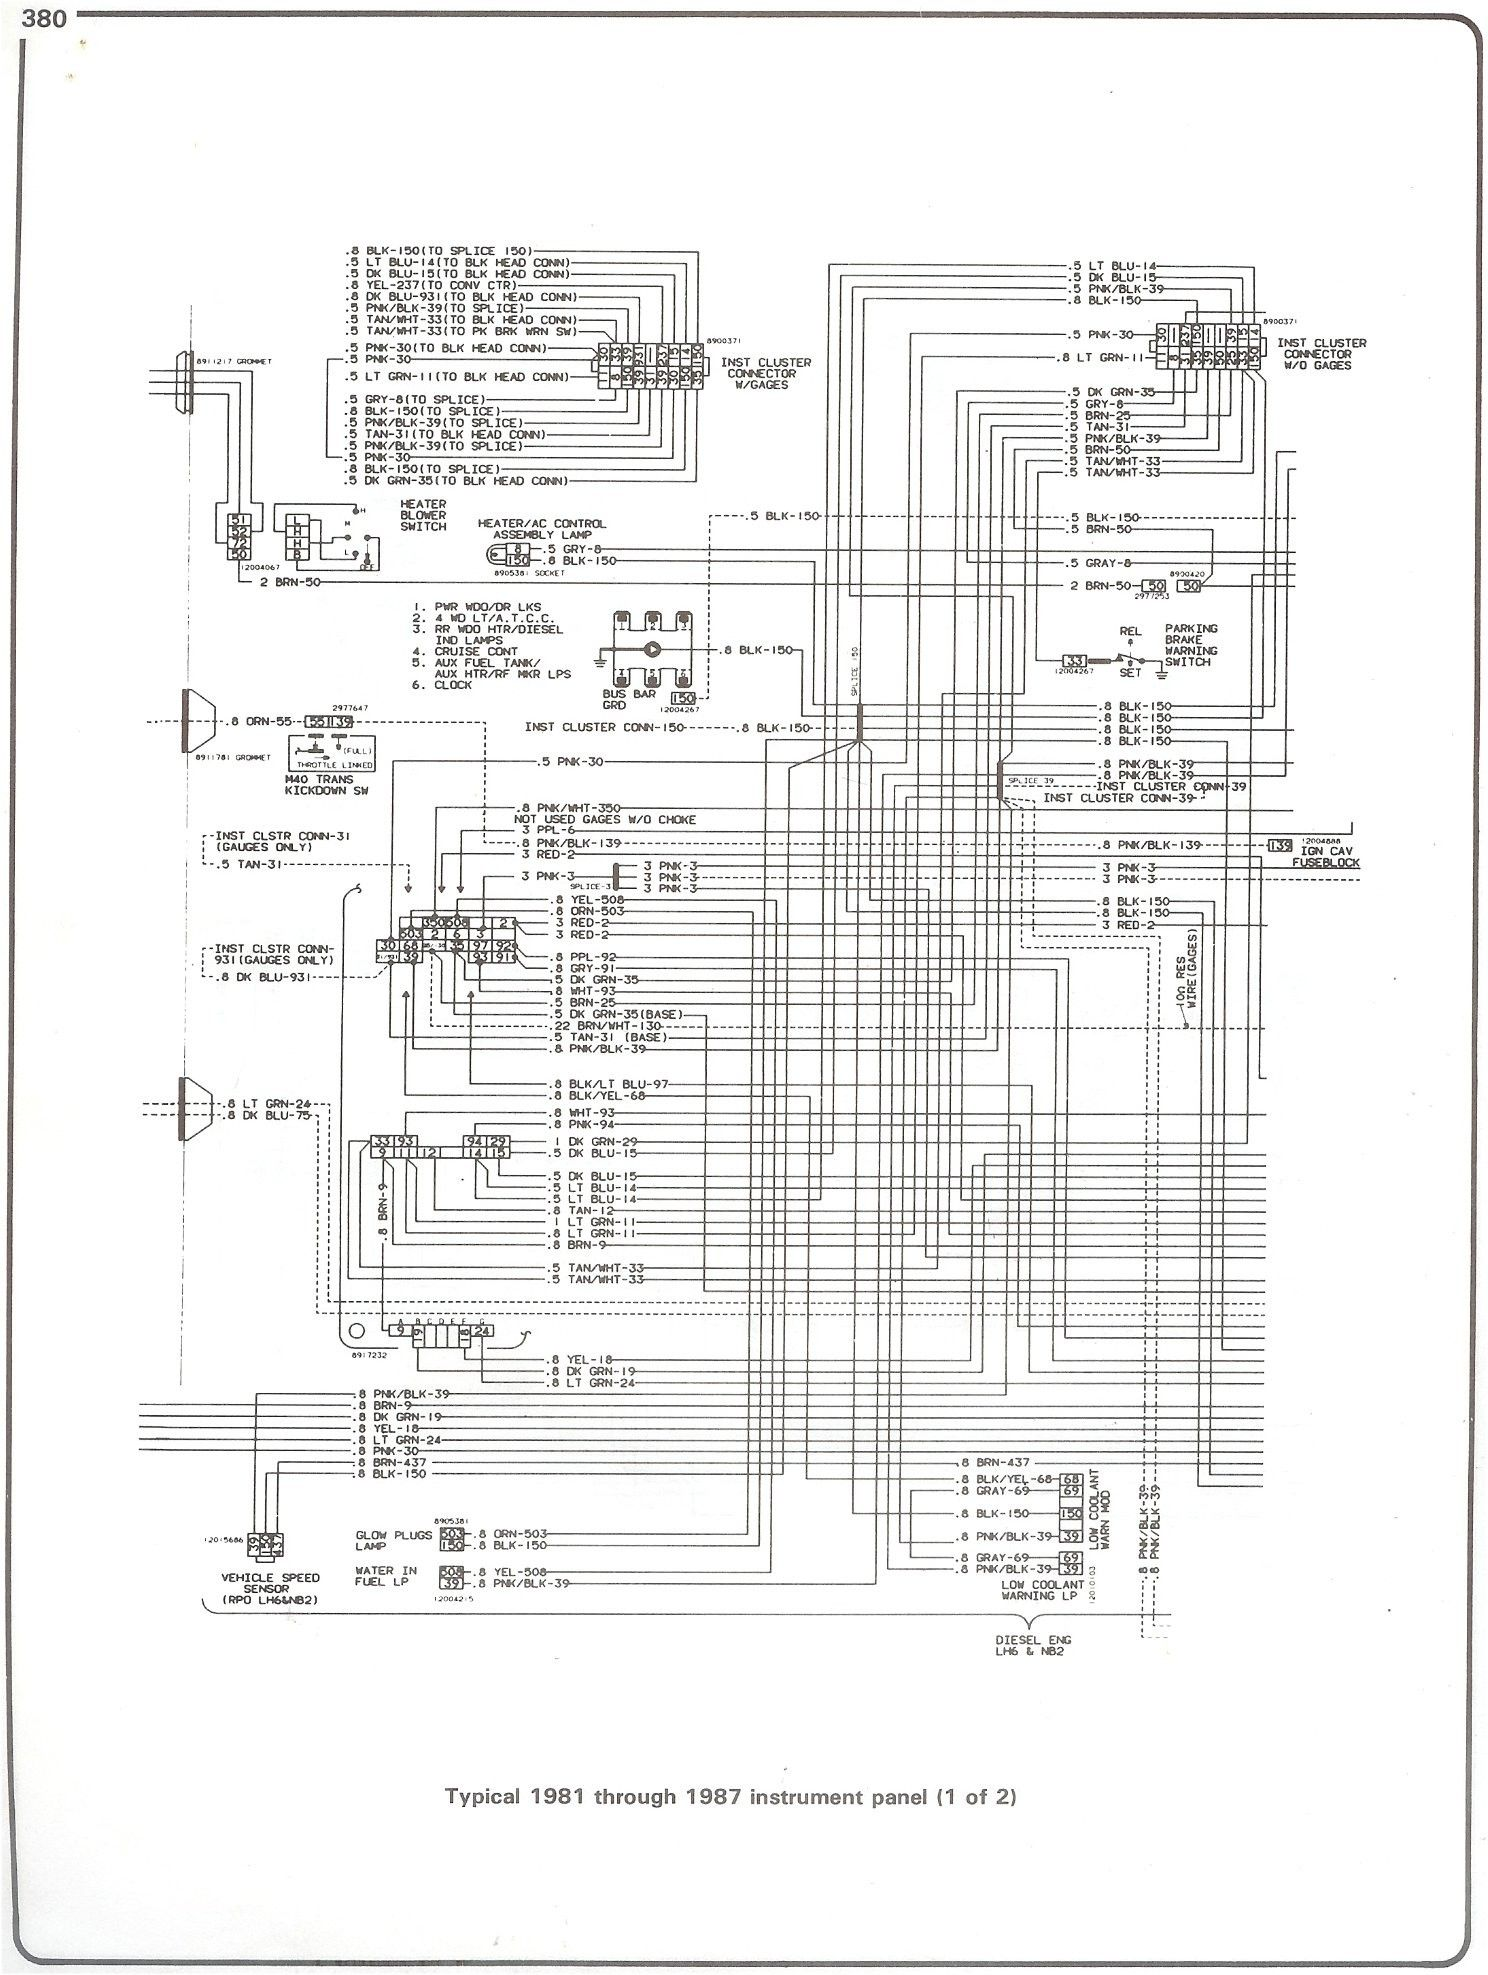 New Wiring Diagram Of Zen Car Diagram Diagramtemplate Diagramsample Chevy Trucks 1979 Chevy Truck 1984 Chevy Truck